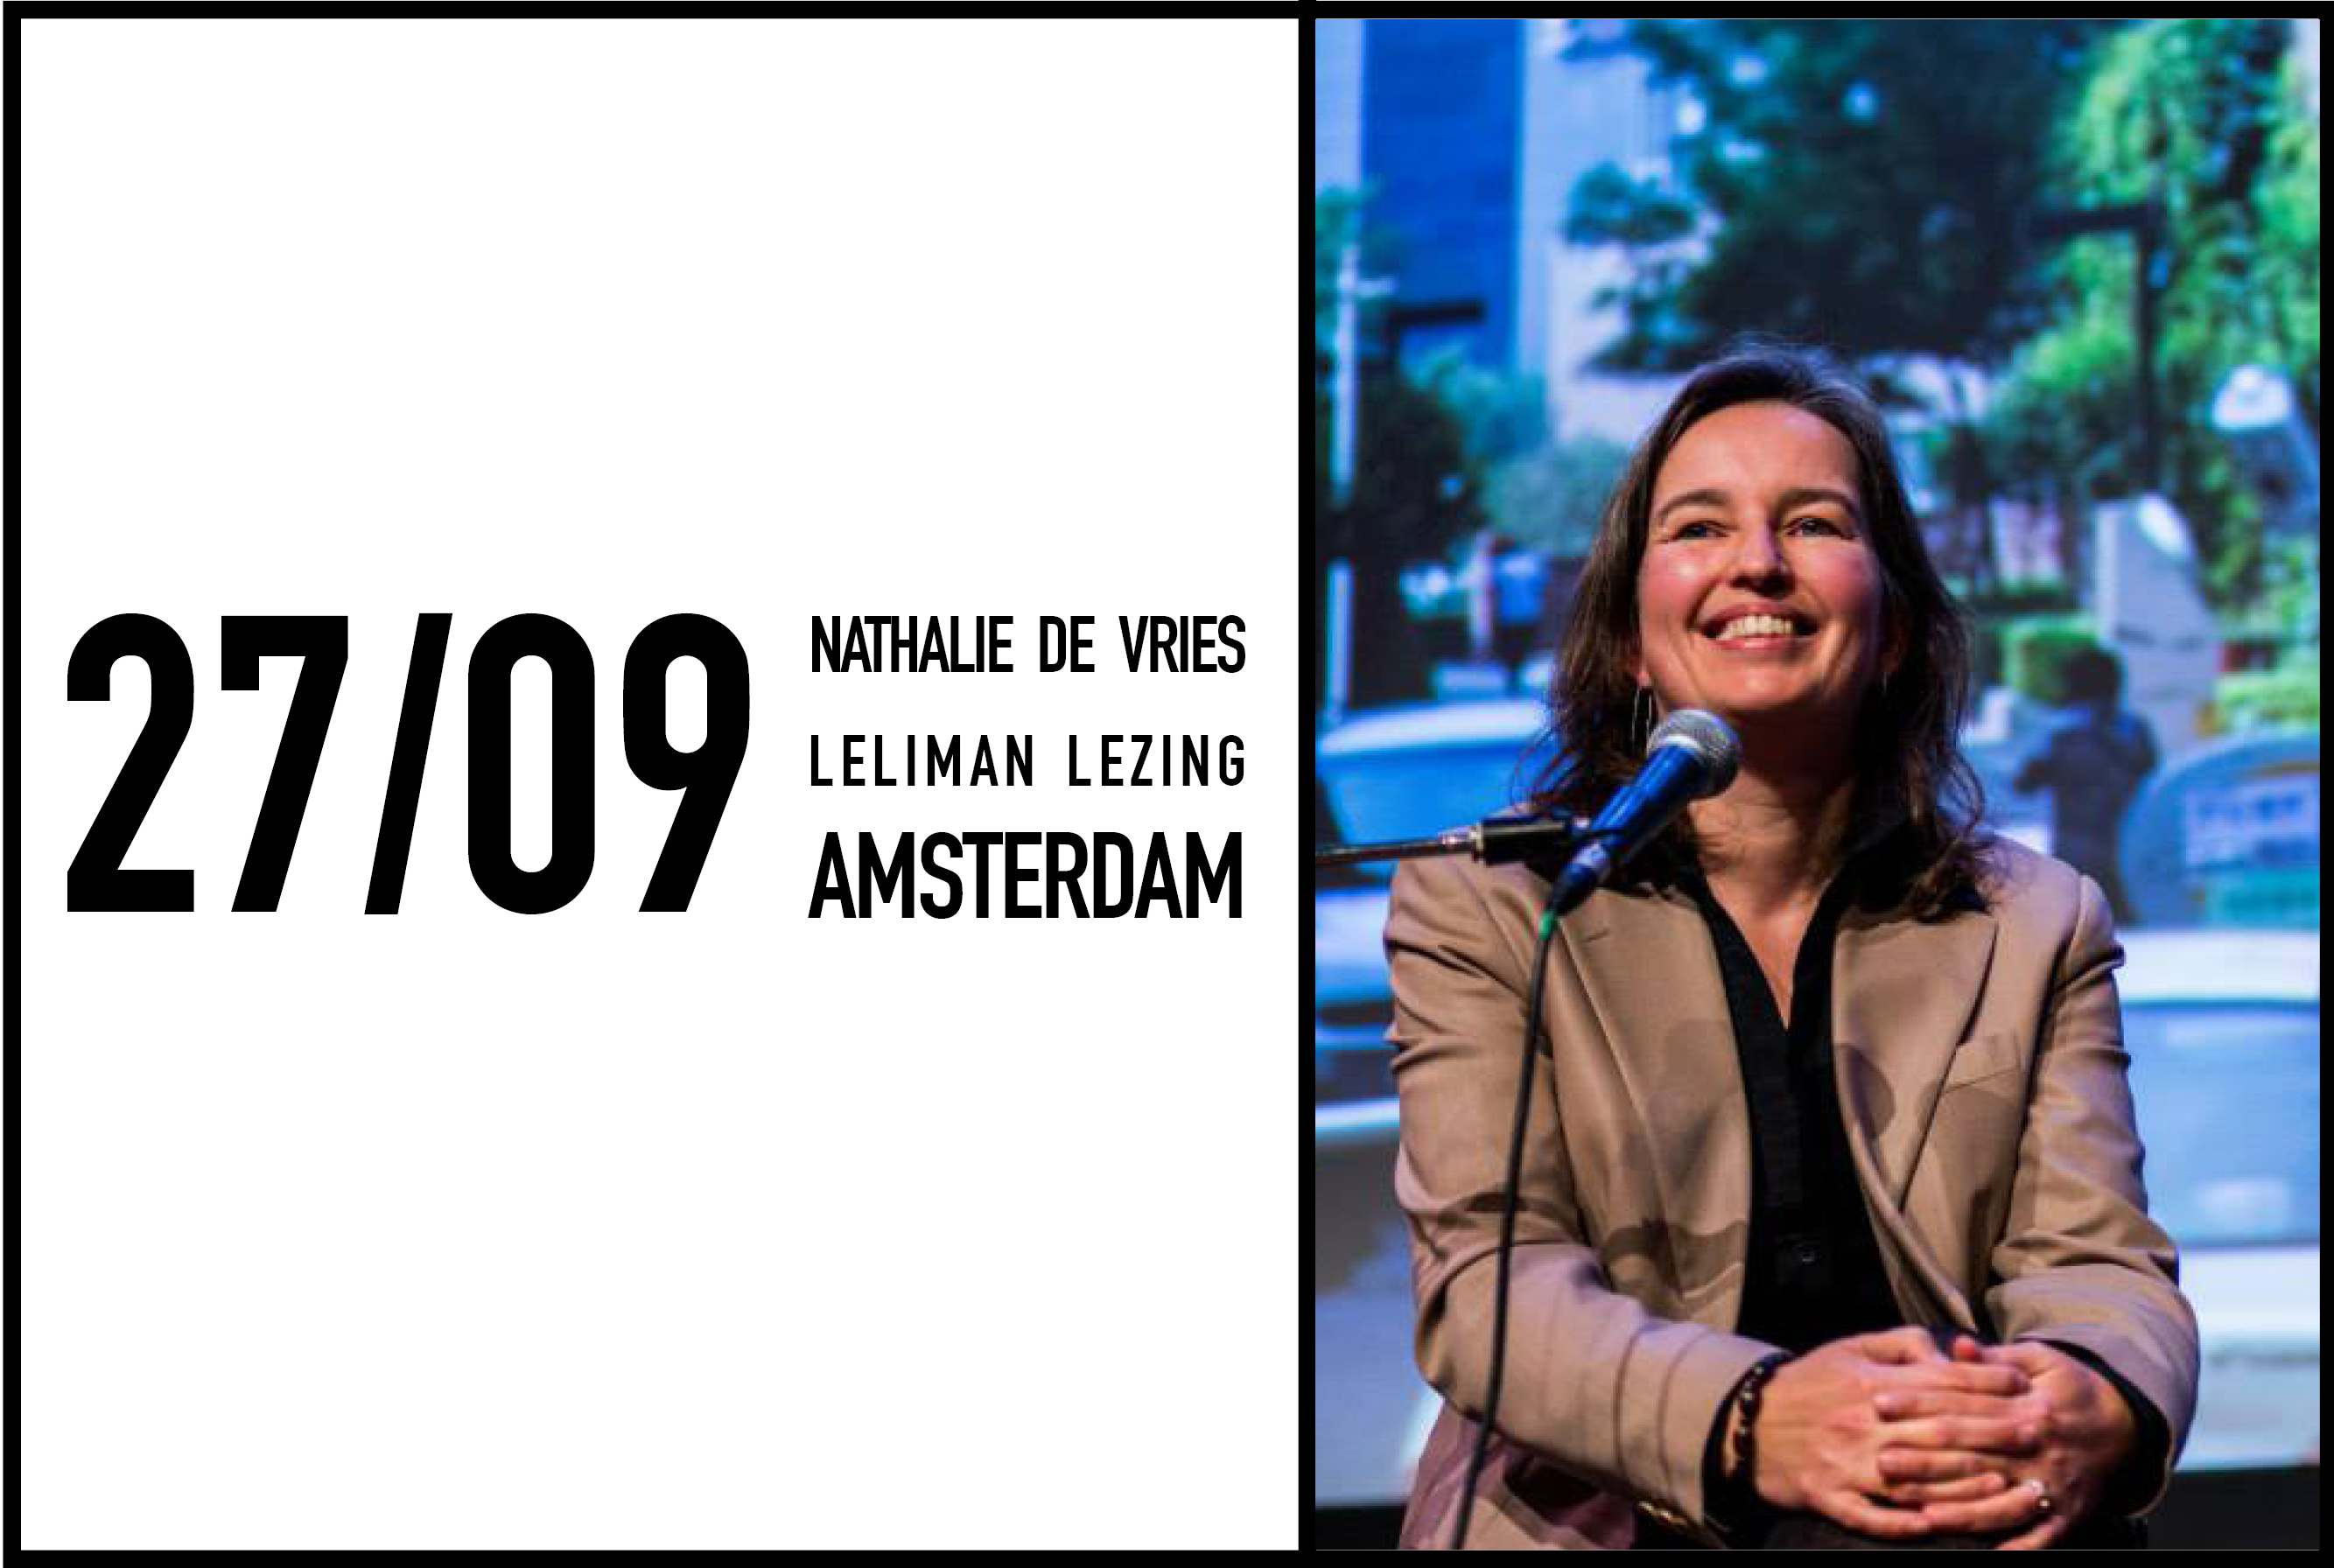 Nathalie de Vries to talk in the next Leliman lezing at Studio Benthem Amsterdam, 27 September 2017